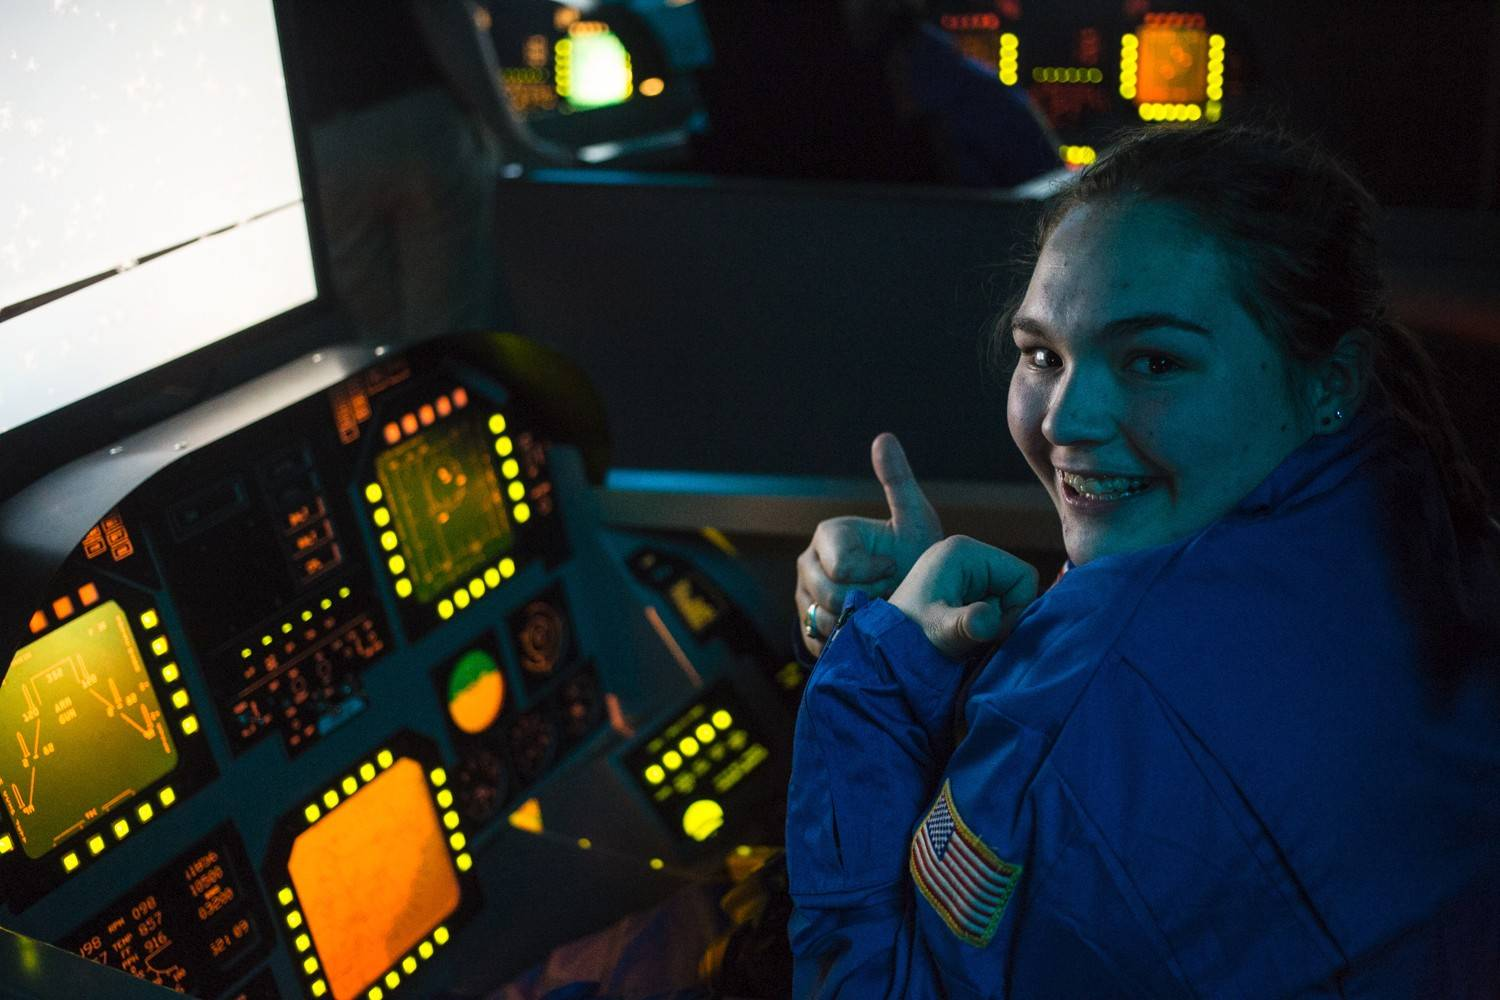 Zoey Krawczyk of Rolling Meadows is in a simulator at the International Space Station as part of a space academy program funded by Honeywell at the U.S. Space & Rocket Center in Huntsville, Ala.